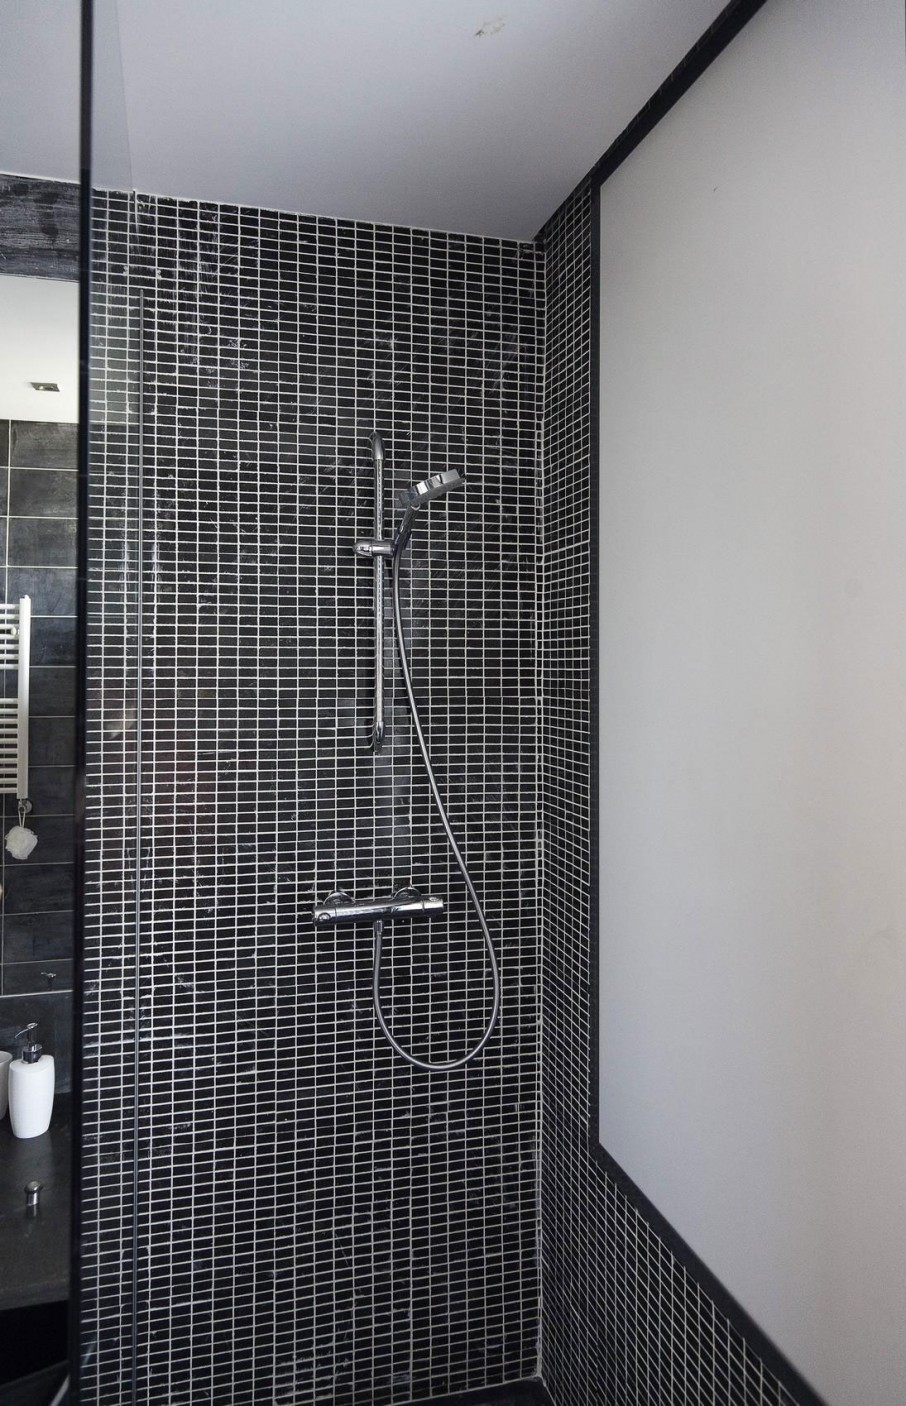 33 Cool Pictures Of Tiled Showers With Glass Doors Design 2019